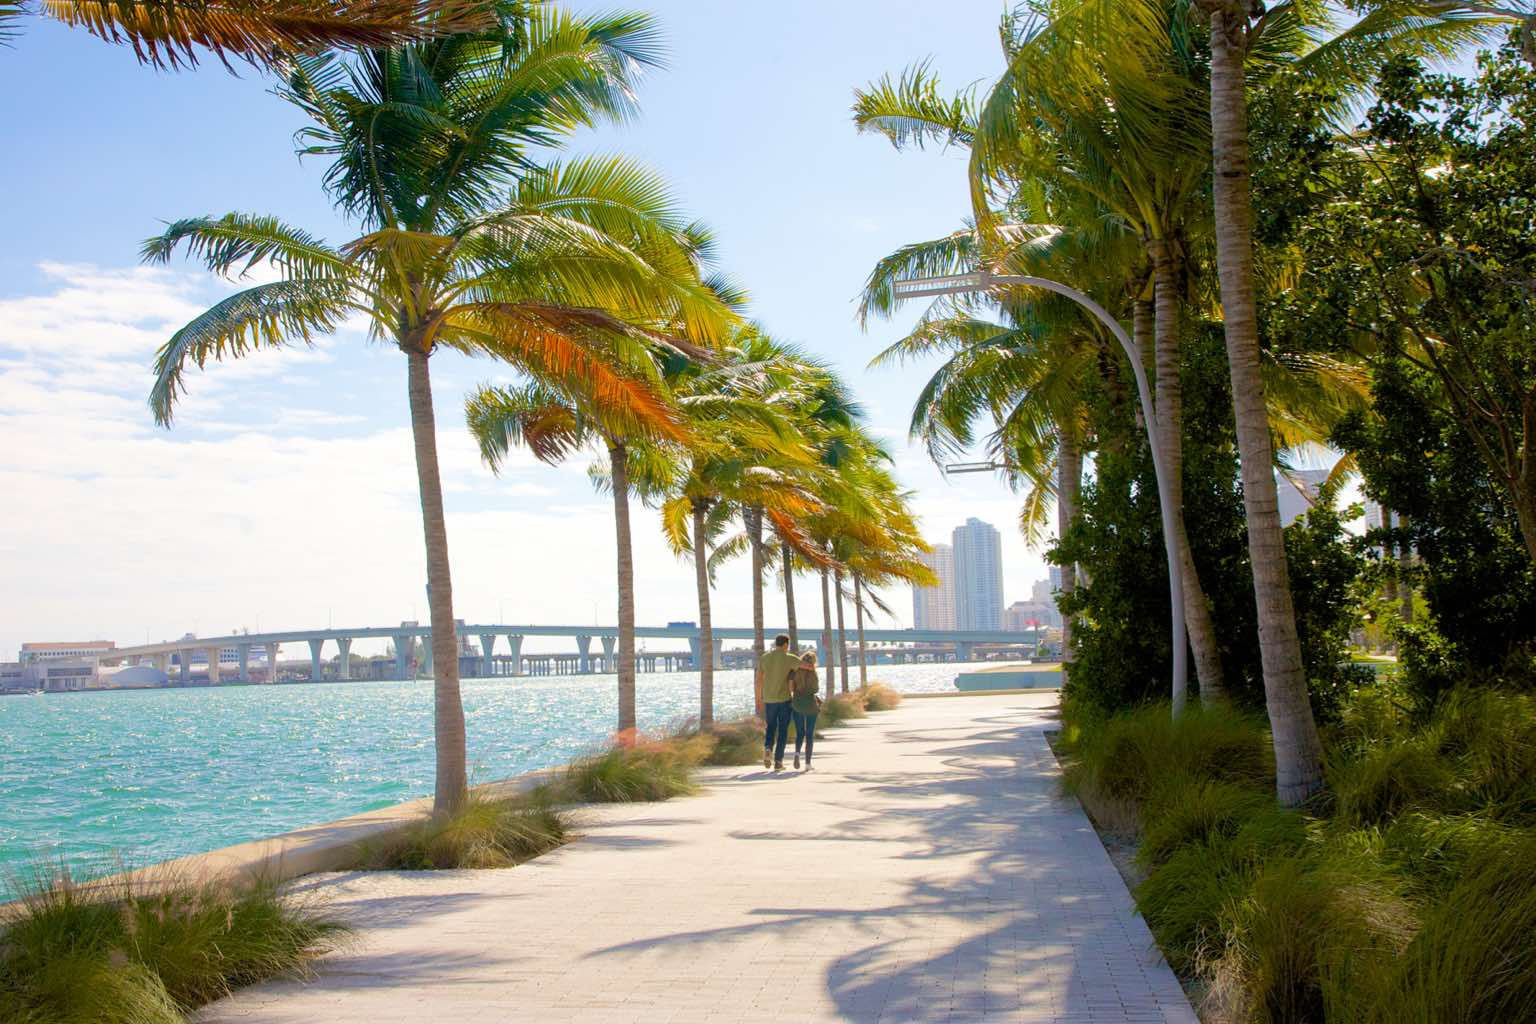 A couple strolls along a palm tree-lined path next to the water in Coral Gables